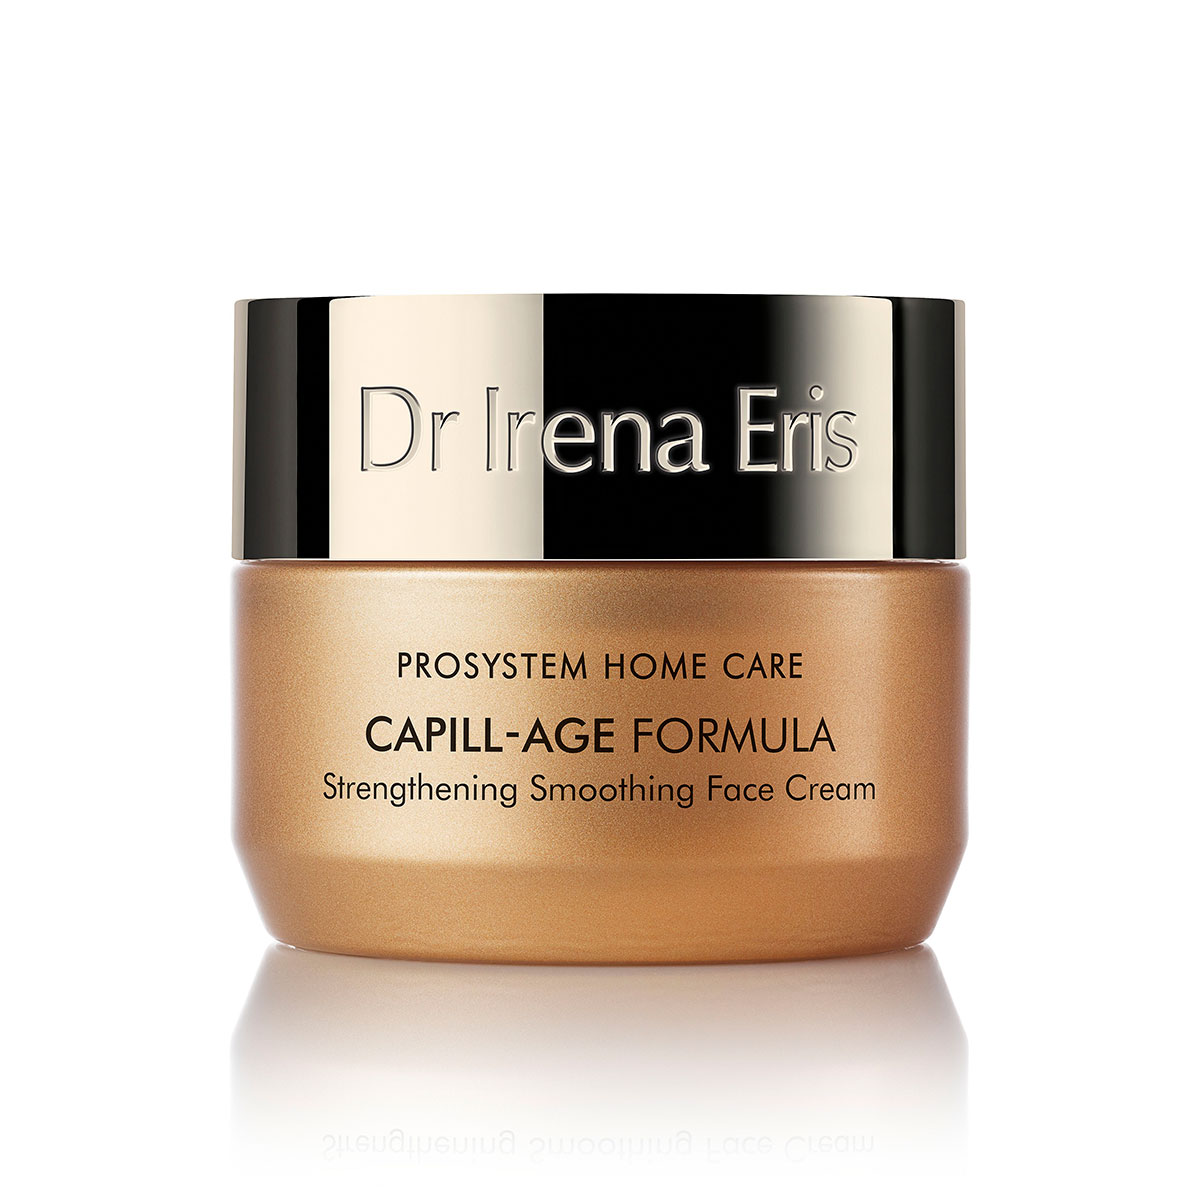 CAPILLAR-AGE FORMULA Strengthening and Smoothing Face Day Cream SPF 20 851